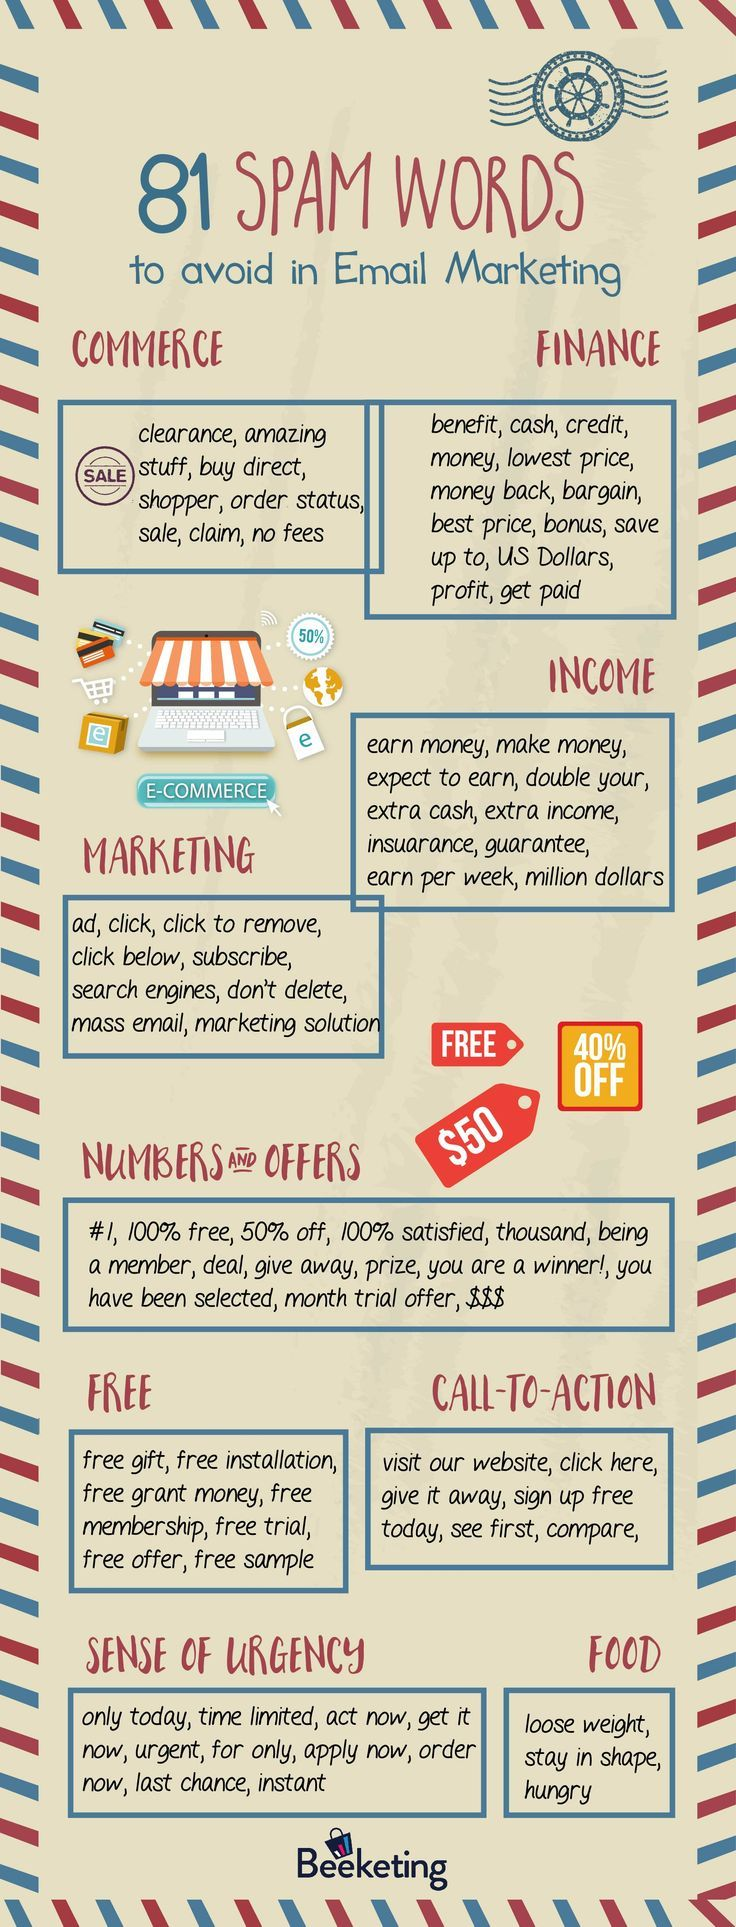 This is an infographic of 81 spam words highly vulnerable to spam filters that you should avoid in writing the subject lines and content of emails in business